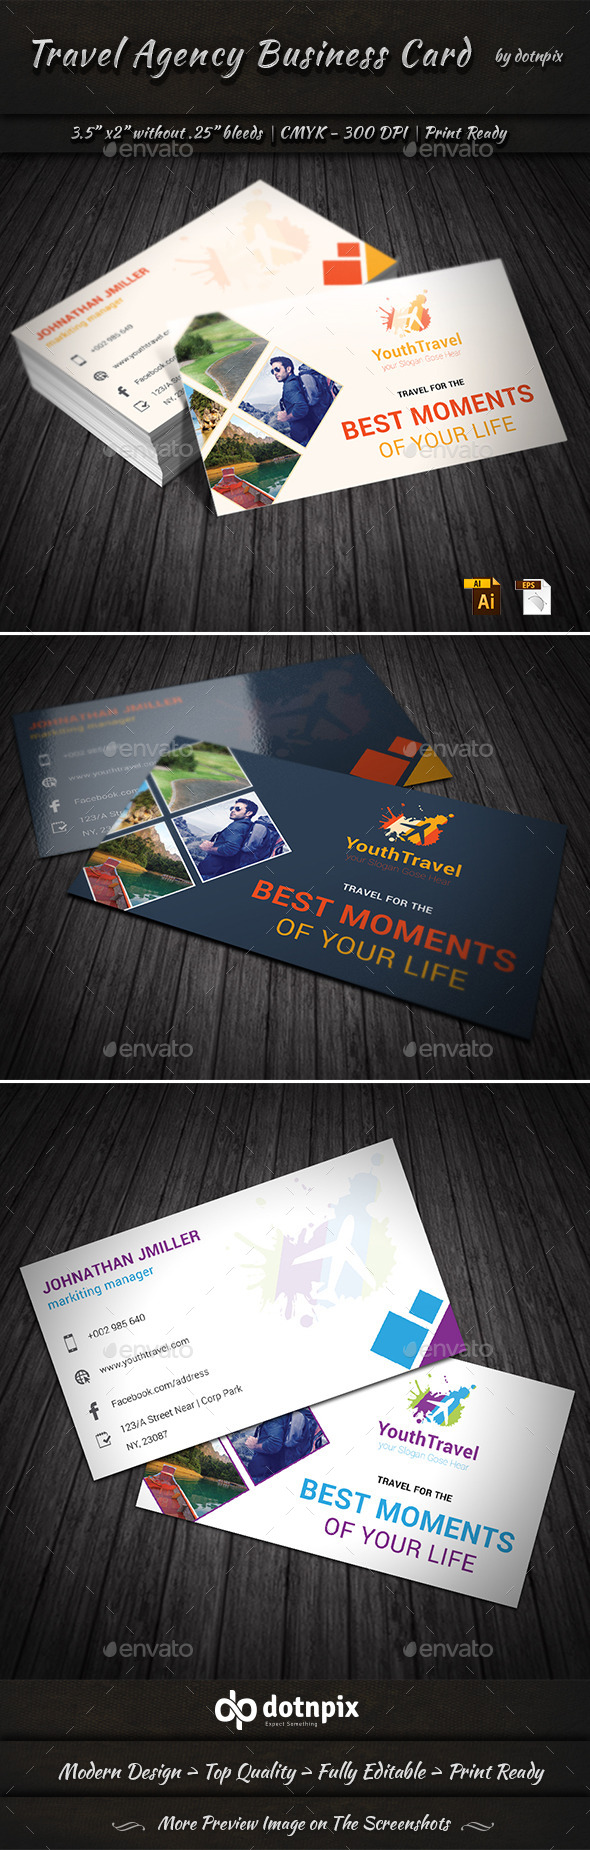 Travel Agency Business Card by dotnpix | GraphicRiver